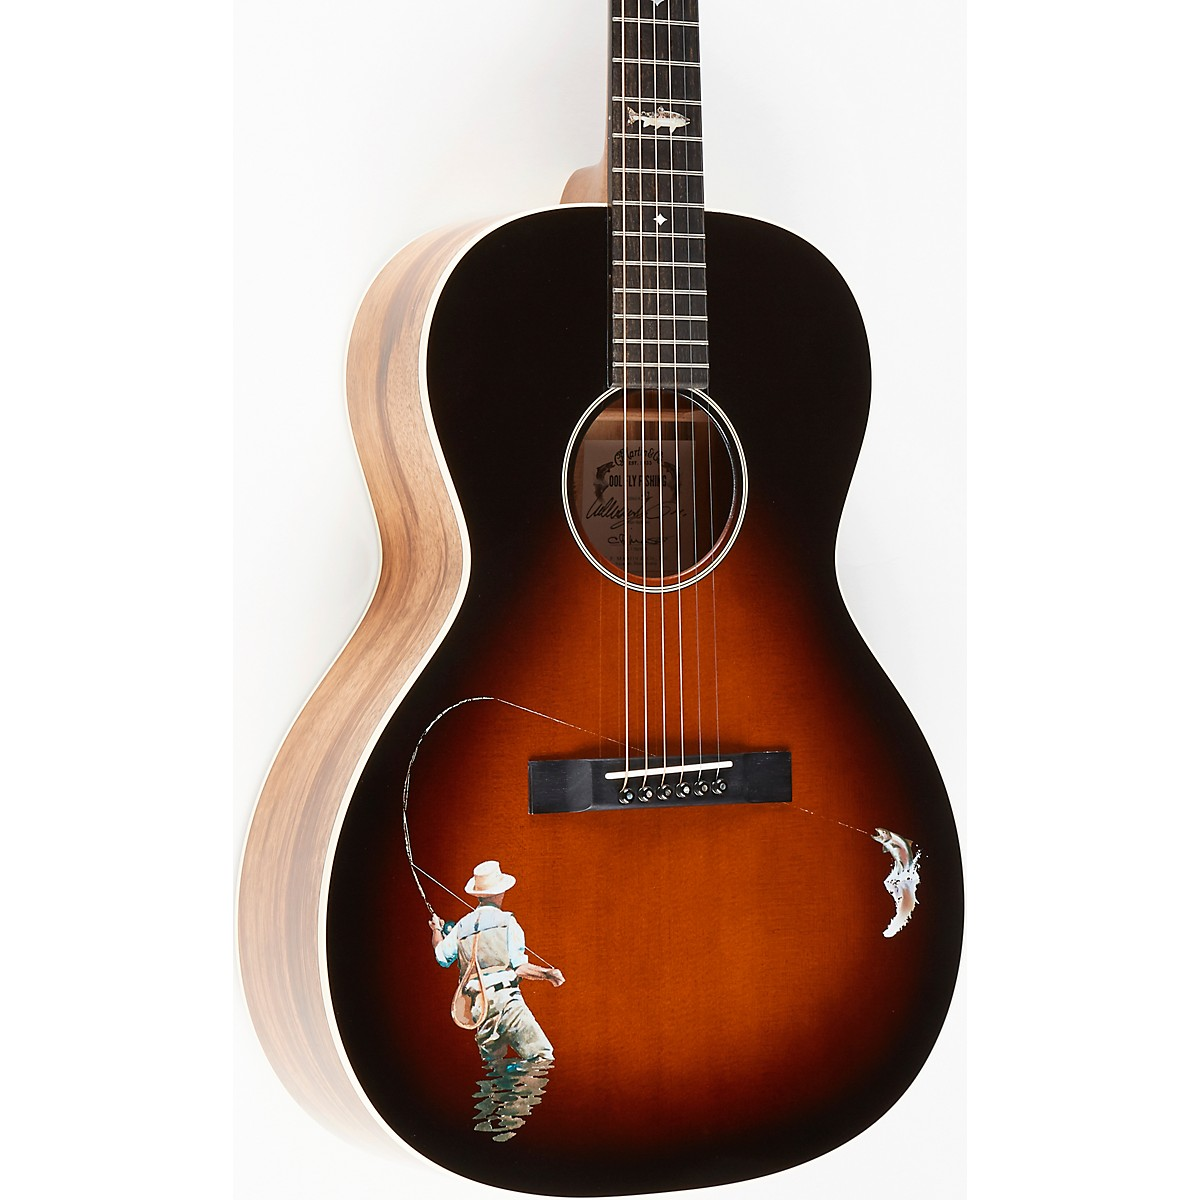 Martin 00L Fly Fishing Parlor Acoustic Guitar